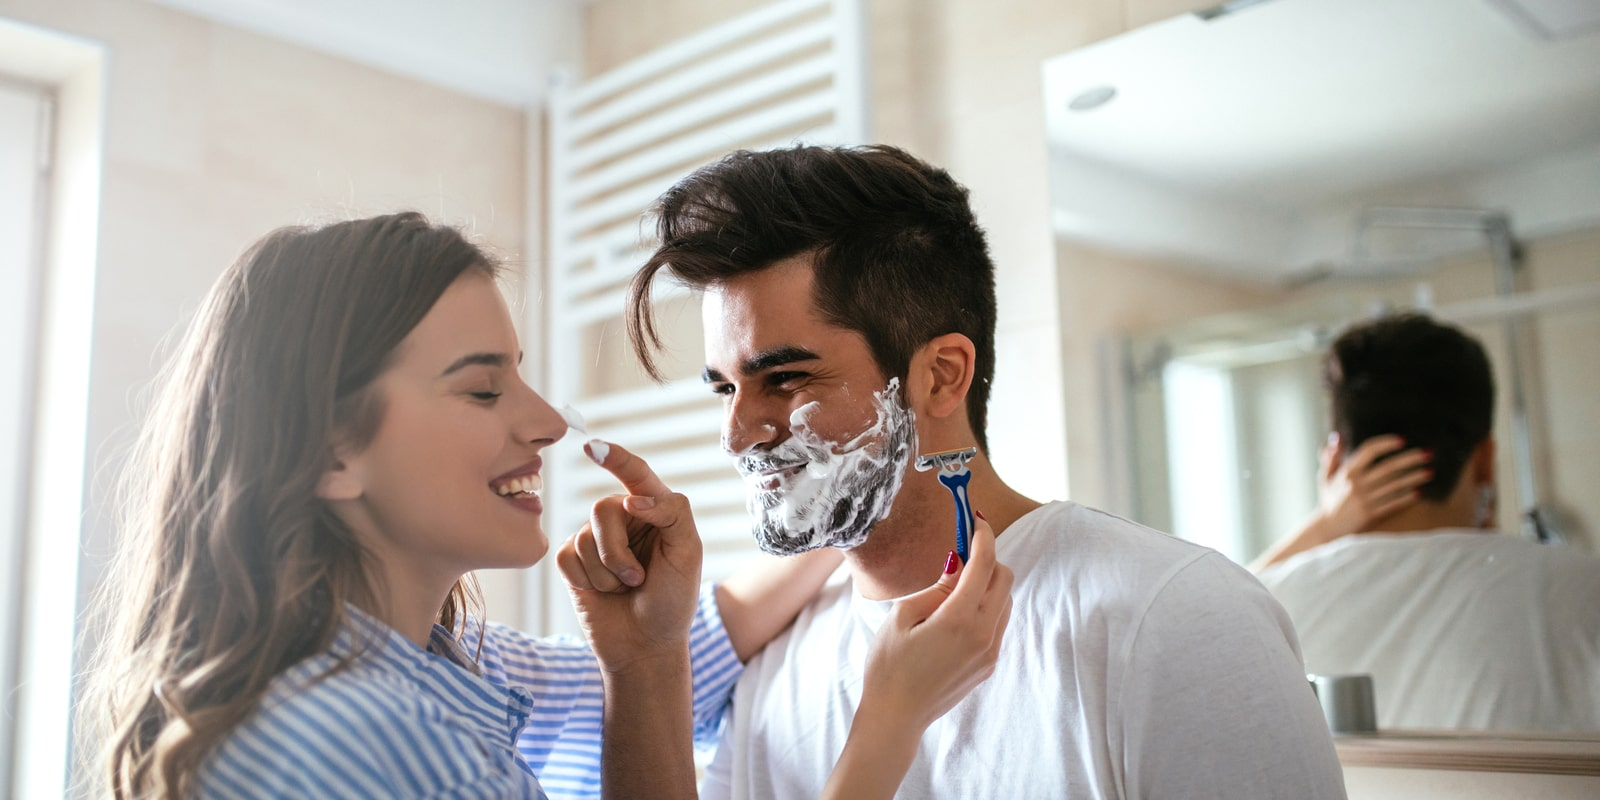 Woman helping man shave his face